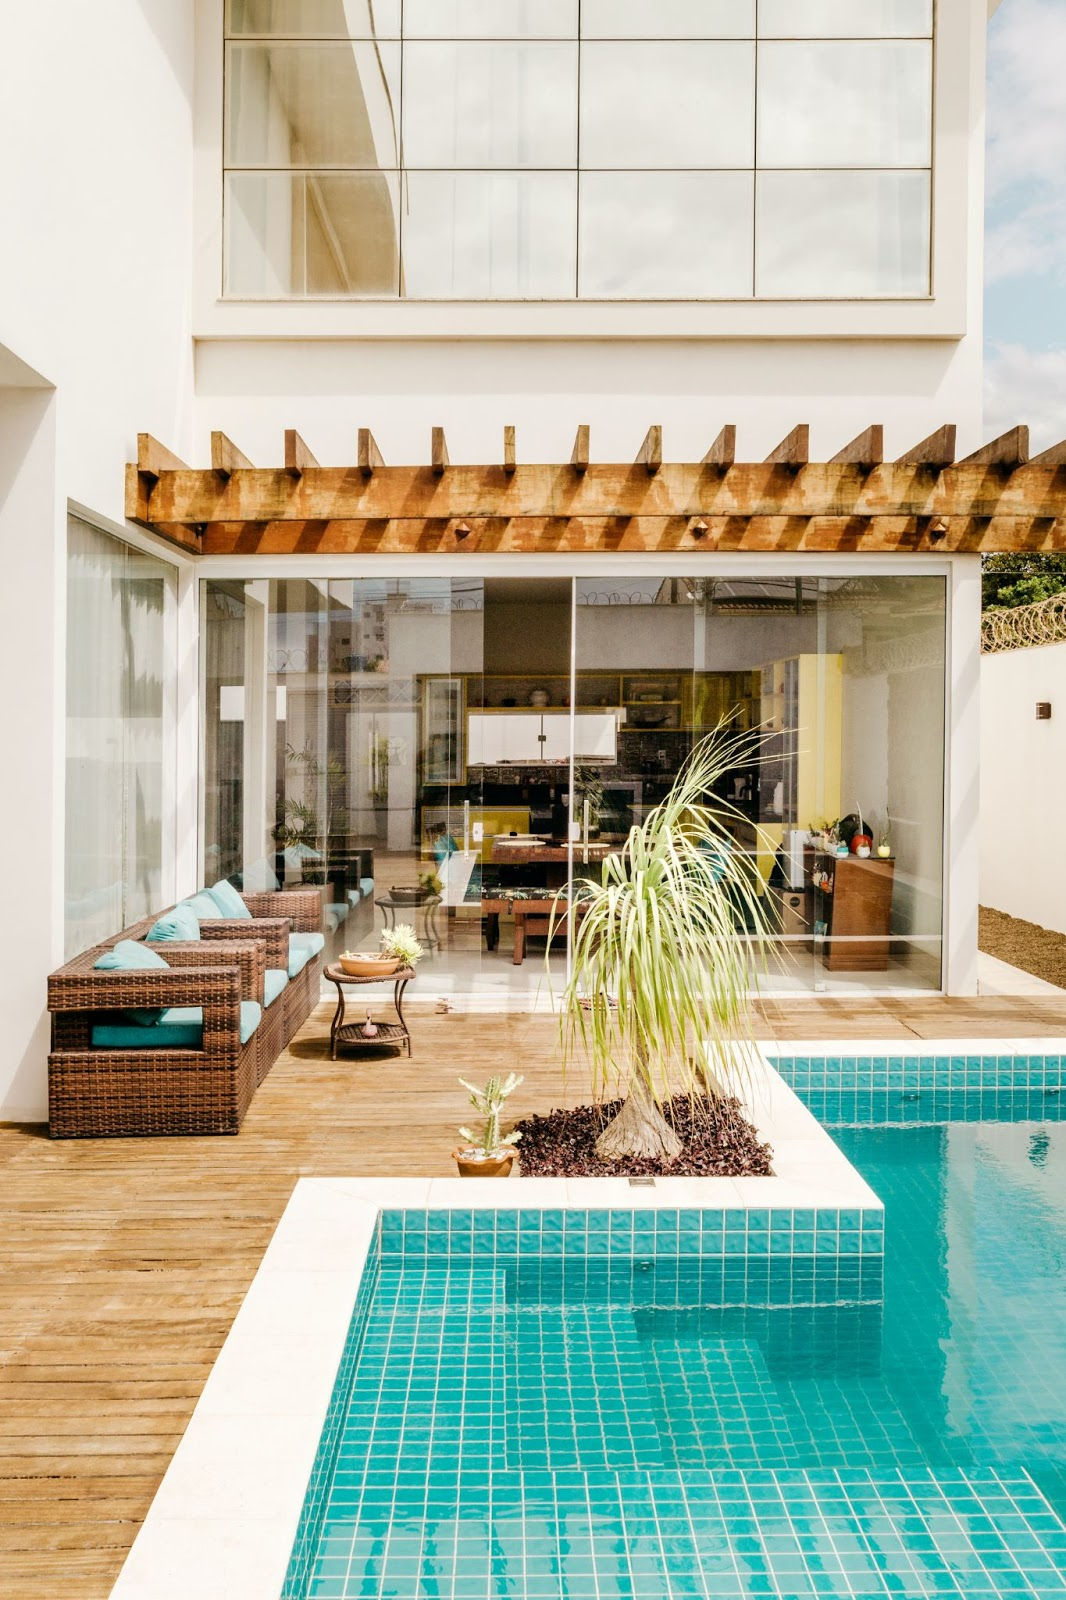 Adding a few amenities to your patio area